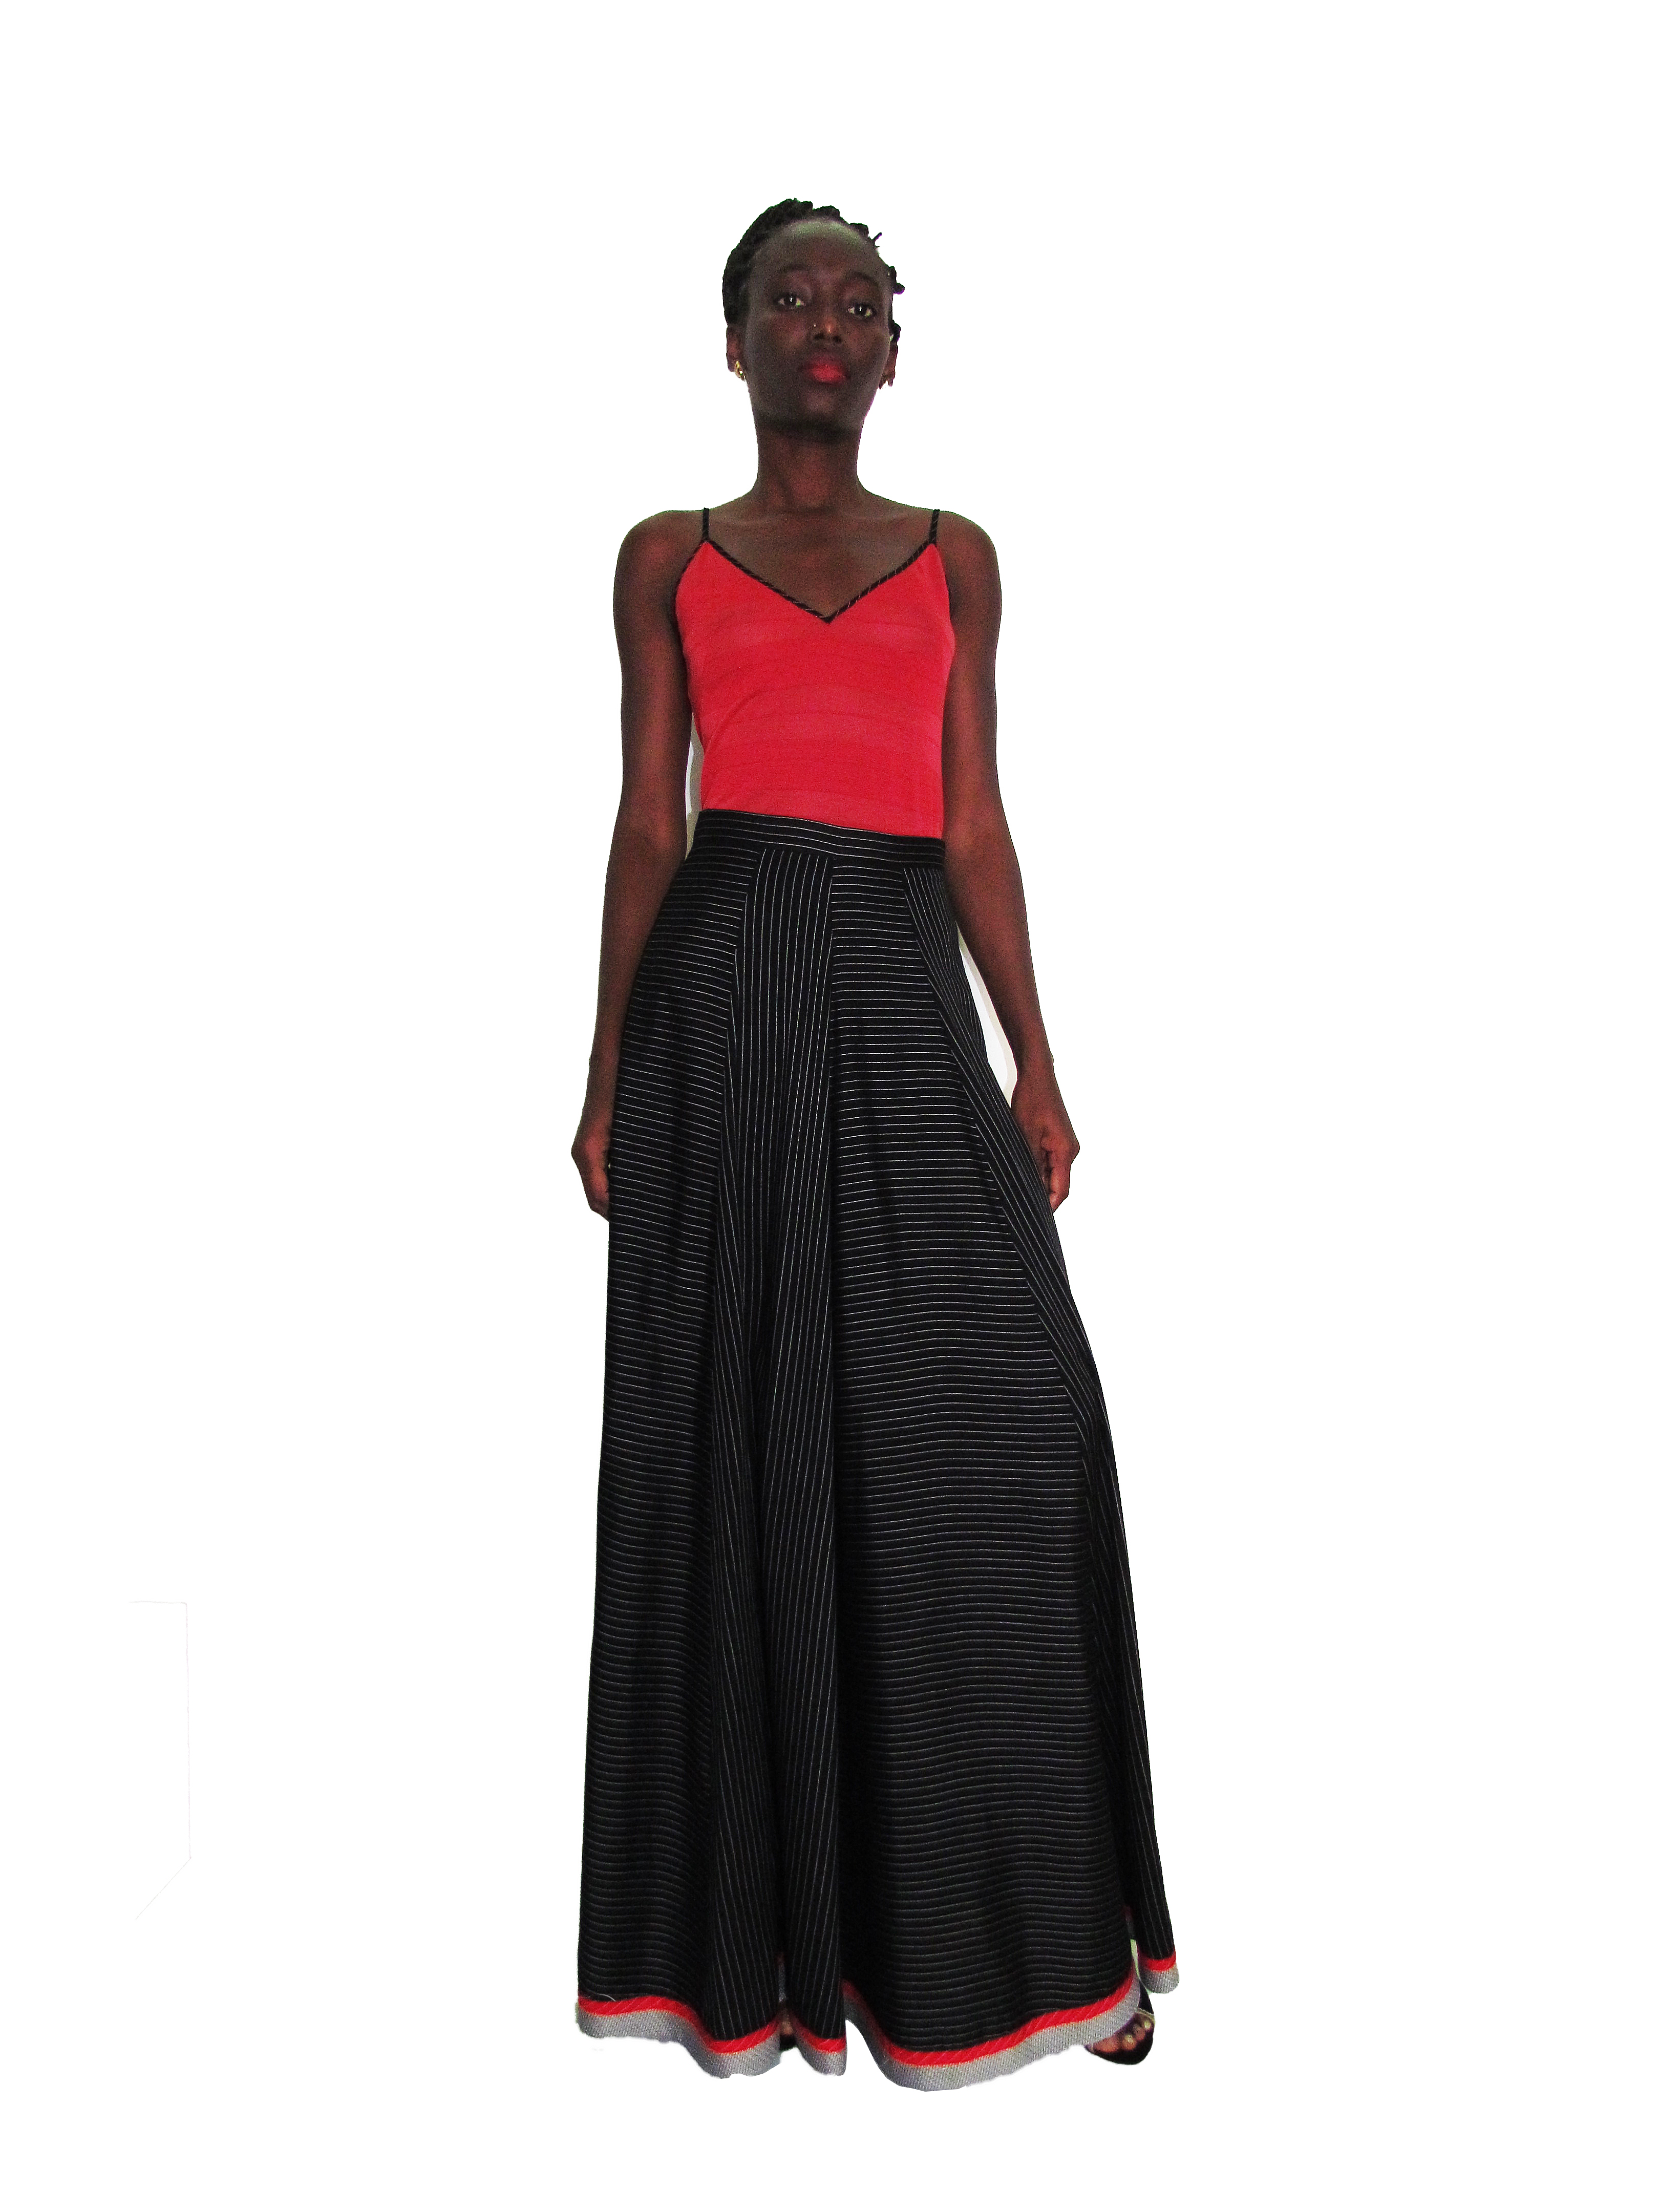 SP 1737 - Maxi Gored Skirt